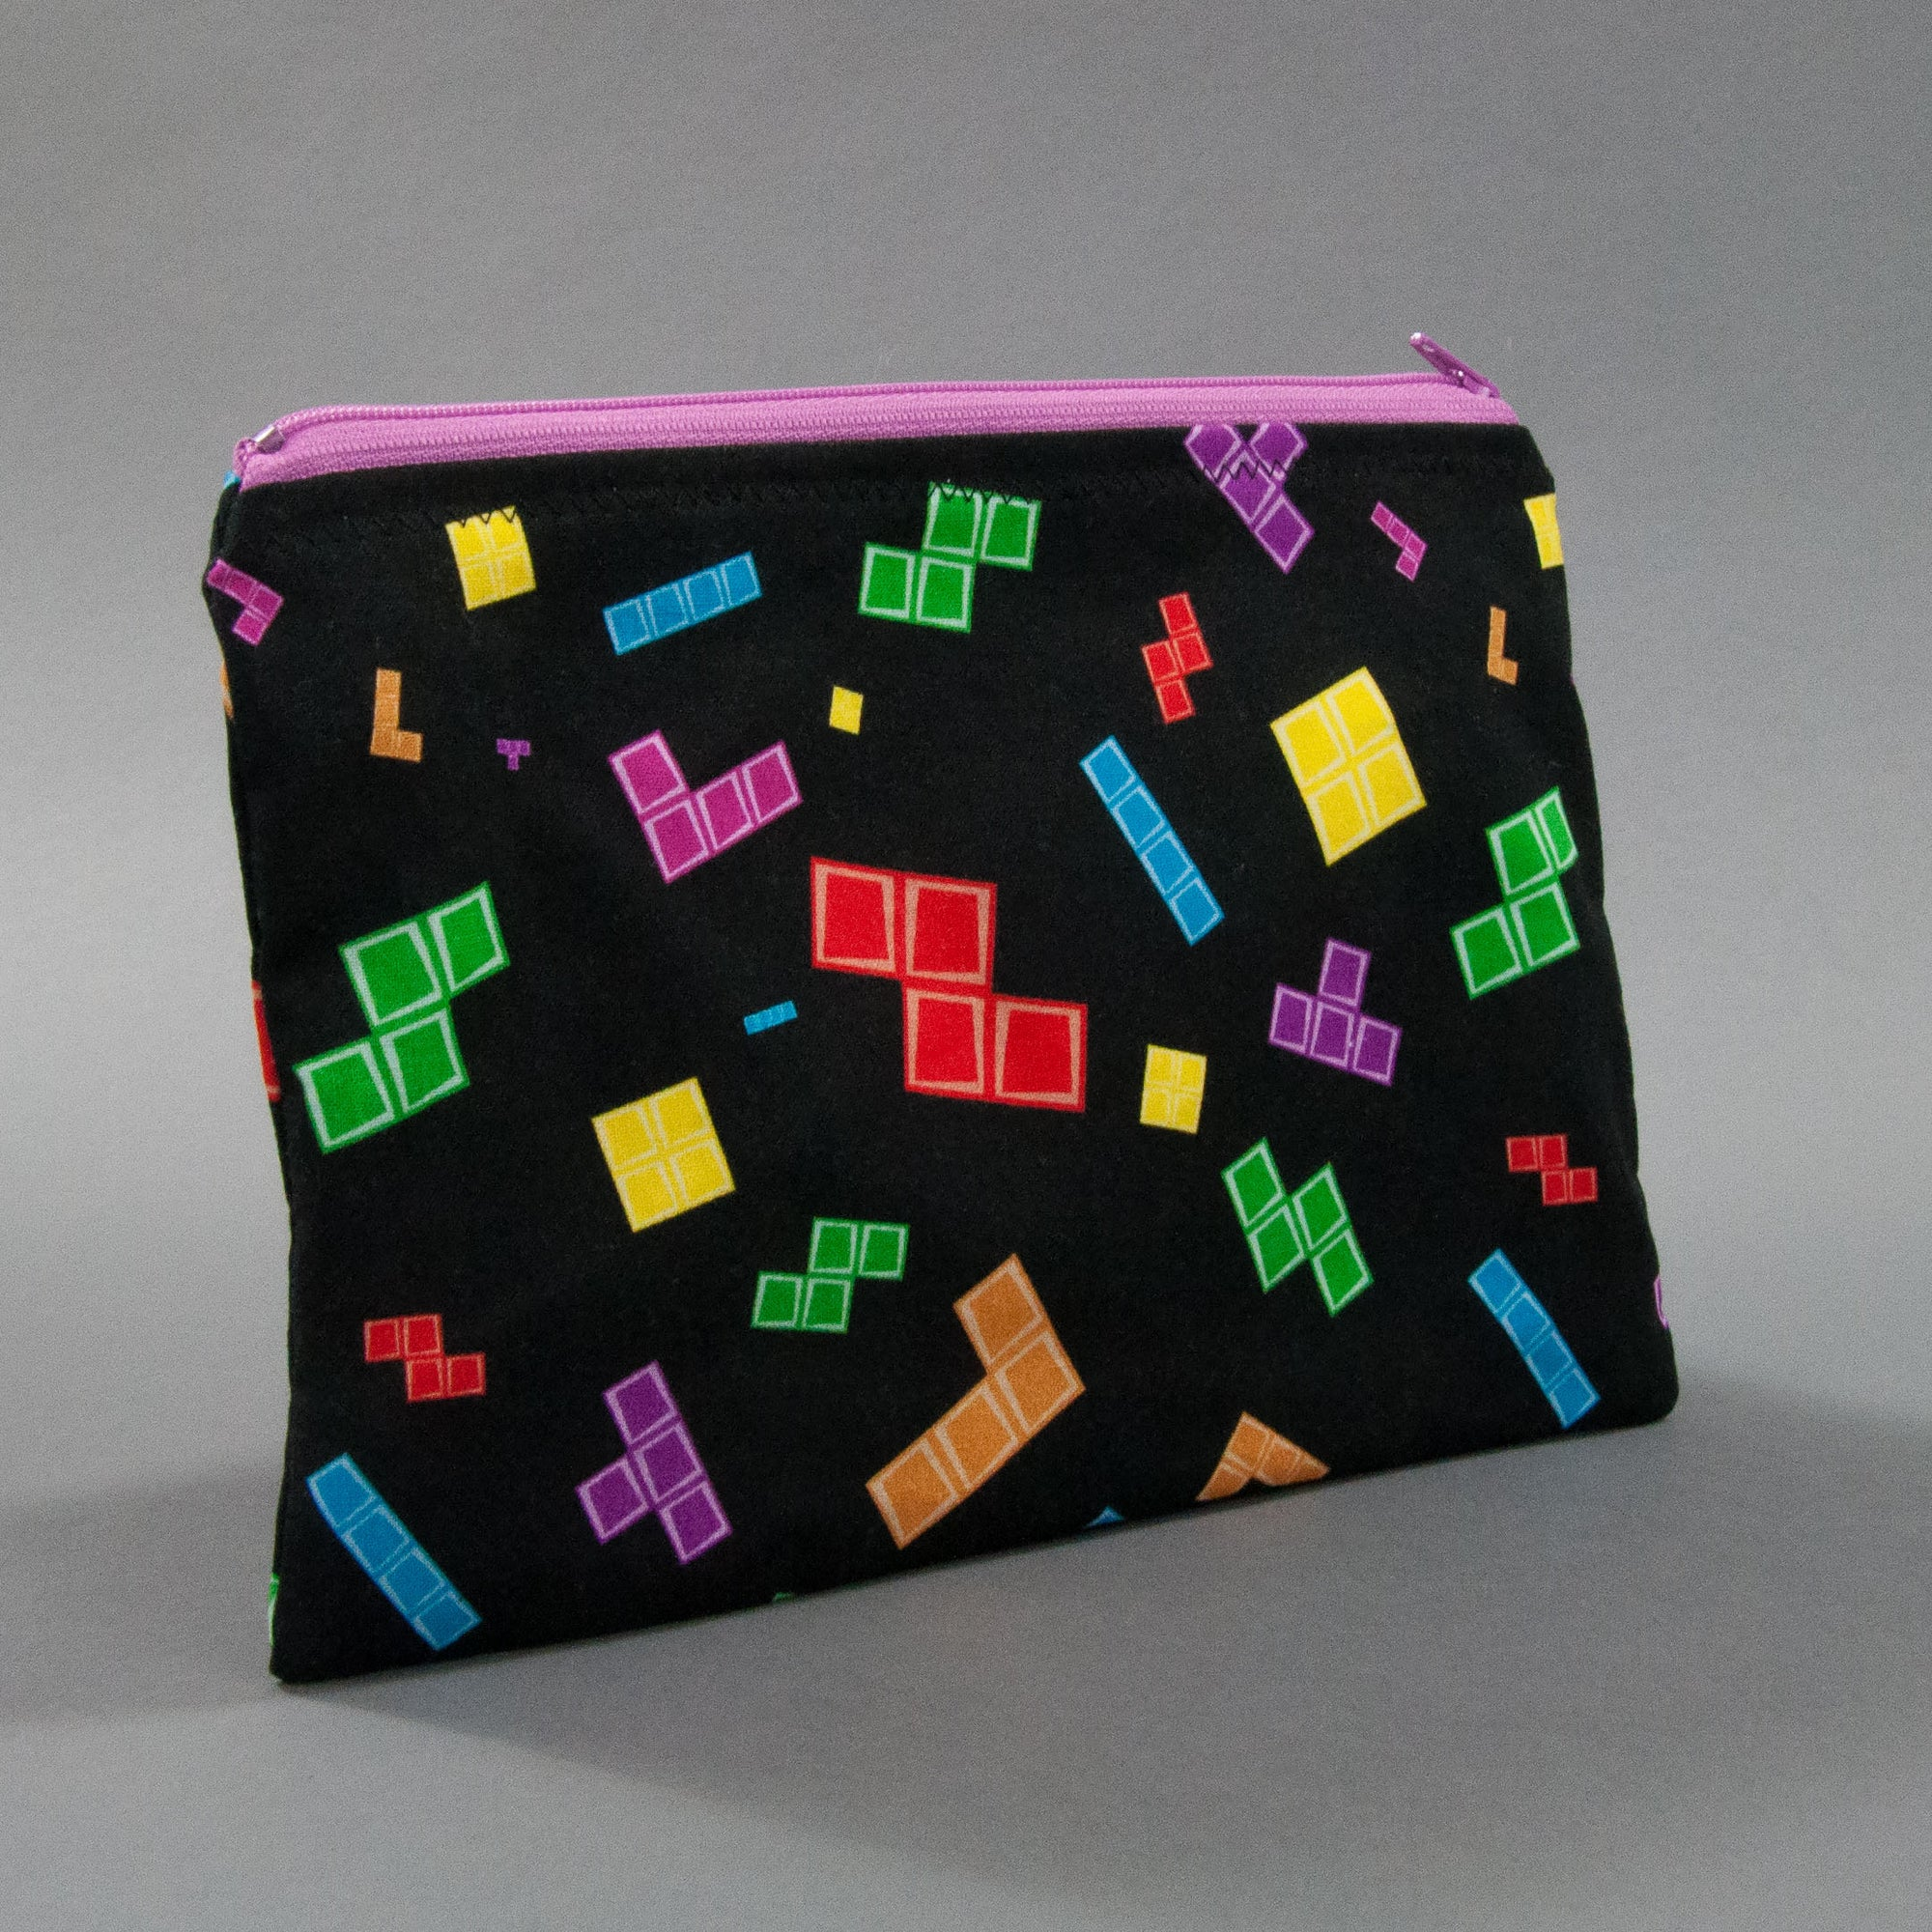 Tetris Zippy Bag, Zippy Bag, - MarshMueller